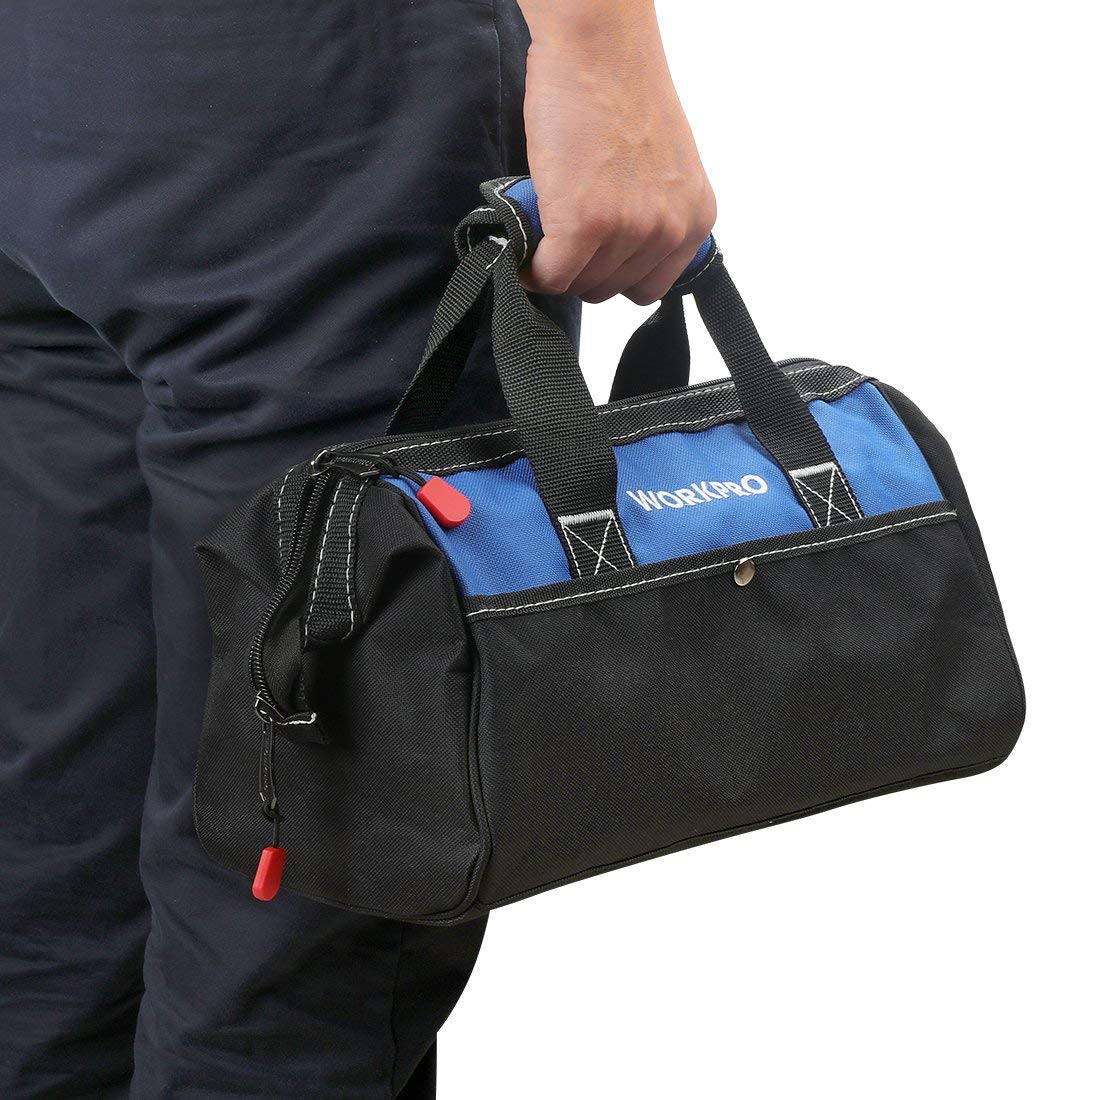 Workpro 13-Inch Tool Bag, Wide Mouth Tool Tote Bag mit Inside Pockets für Tool Storage